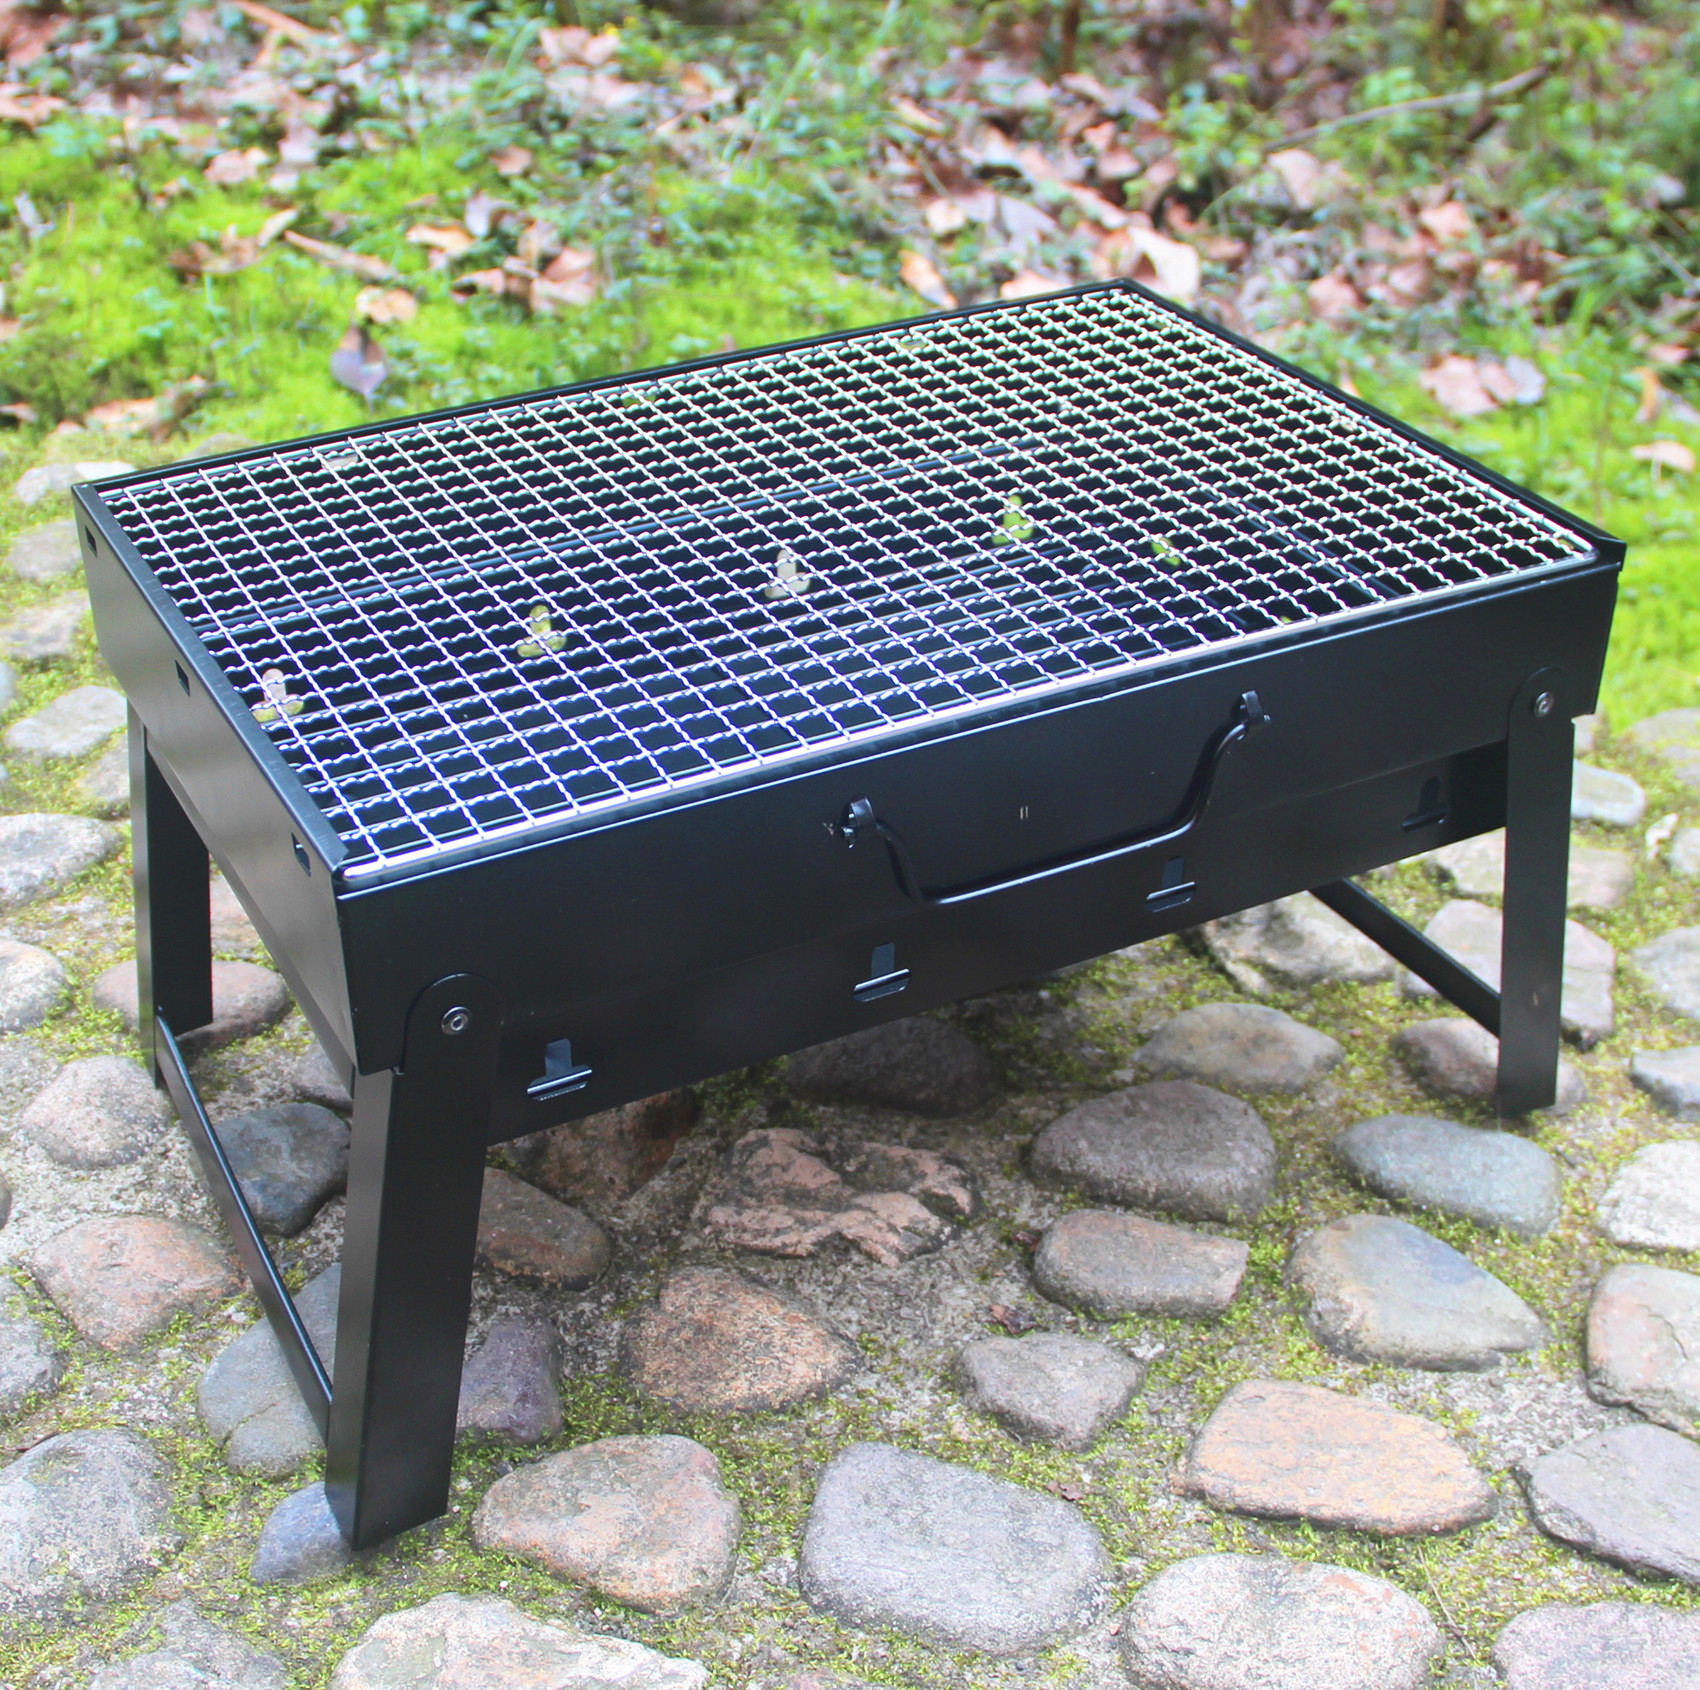 Outdoor Picnic BBQ Grills Large Size Stainless Steel Barbecue Stove Portable Folding Rack BBQ Tools Medium Charcoal Grills